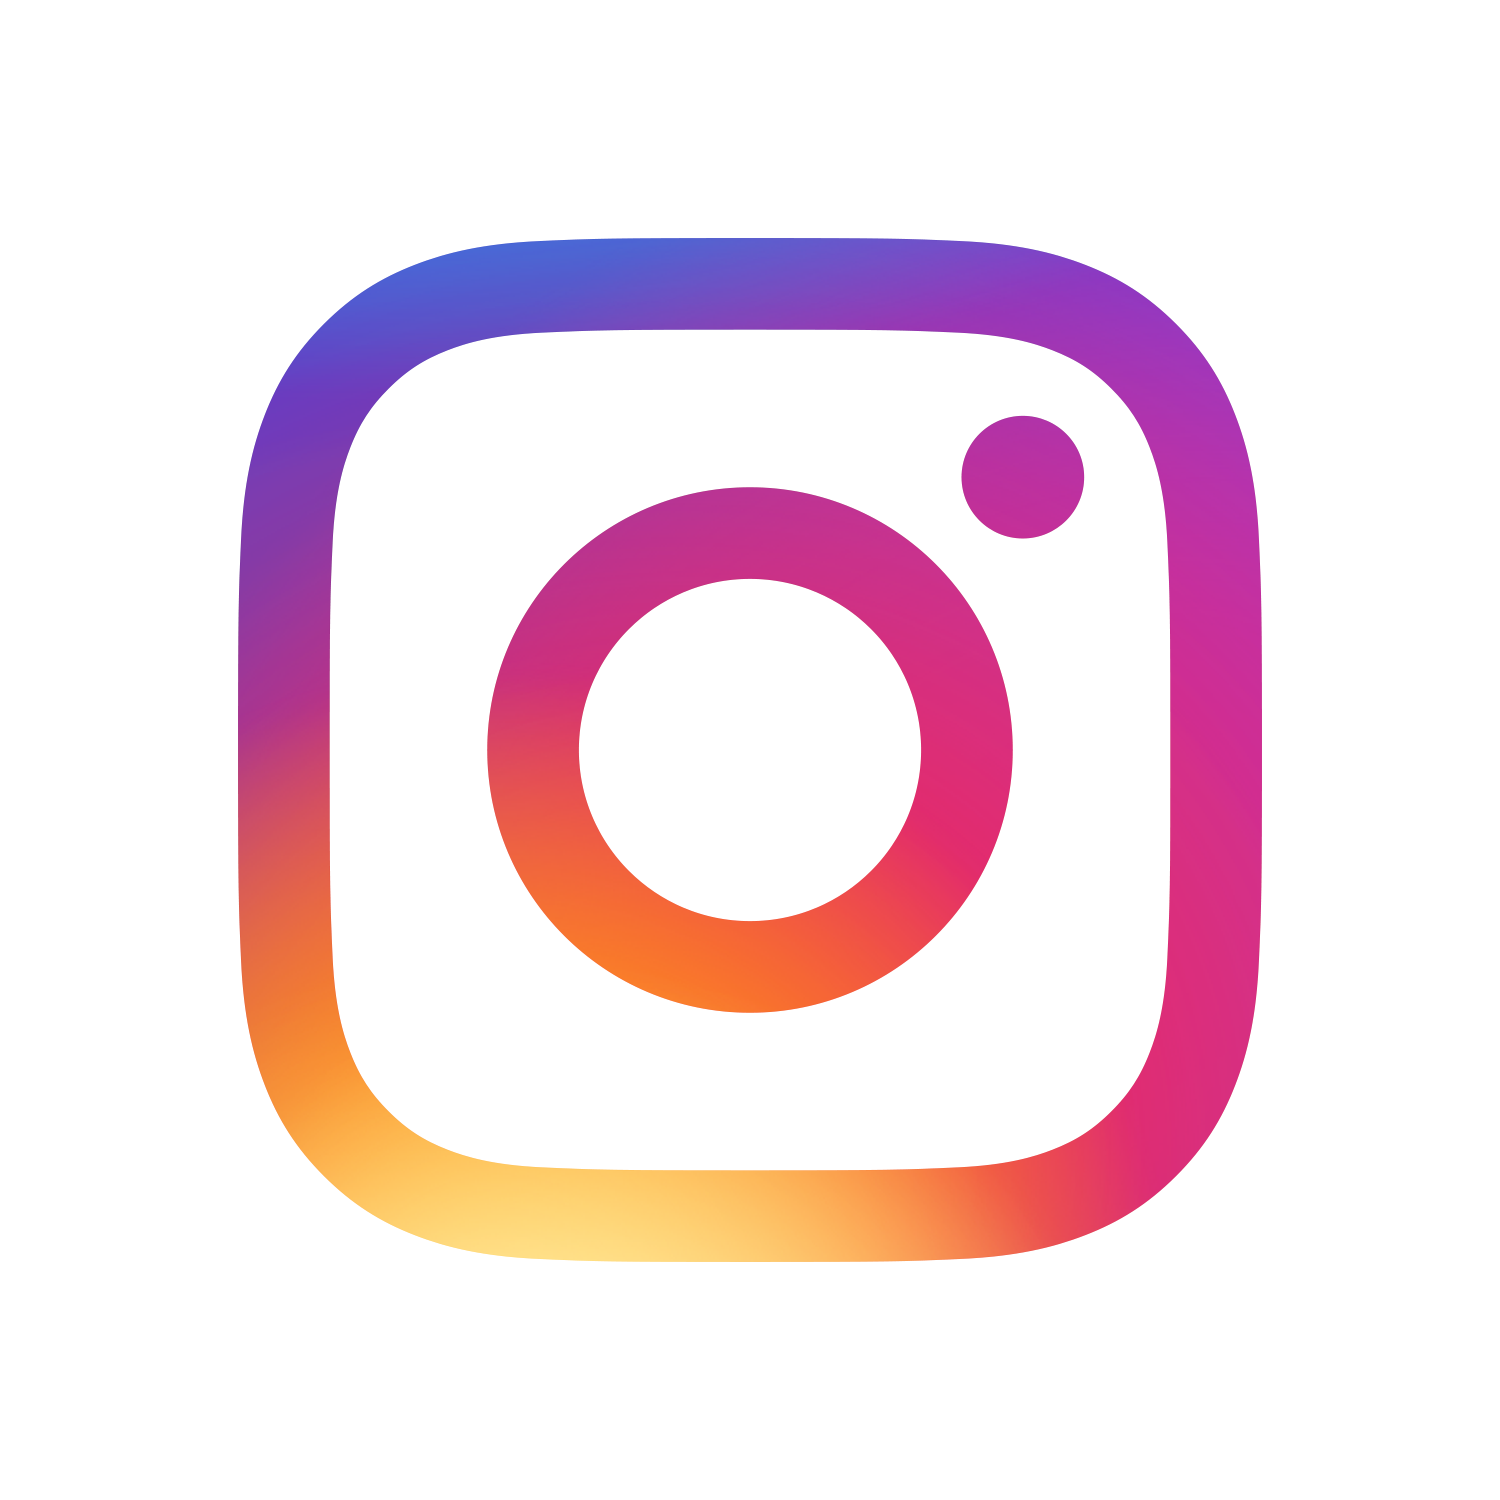 the Instagram glyph